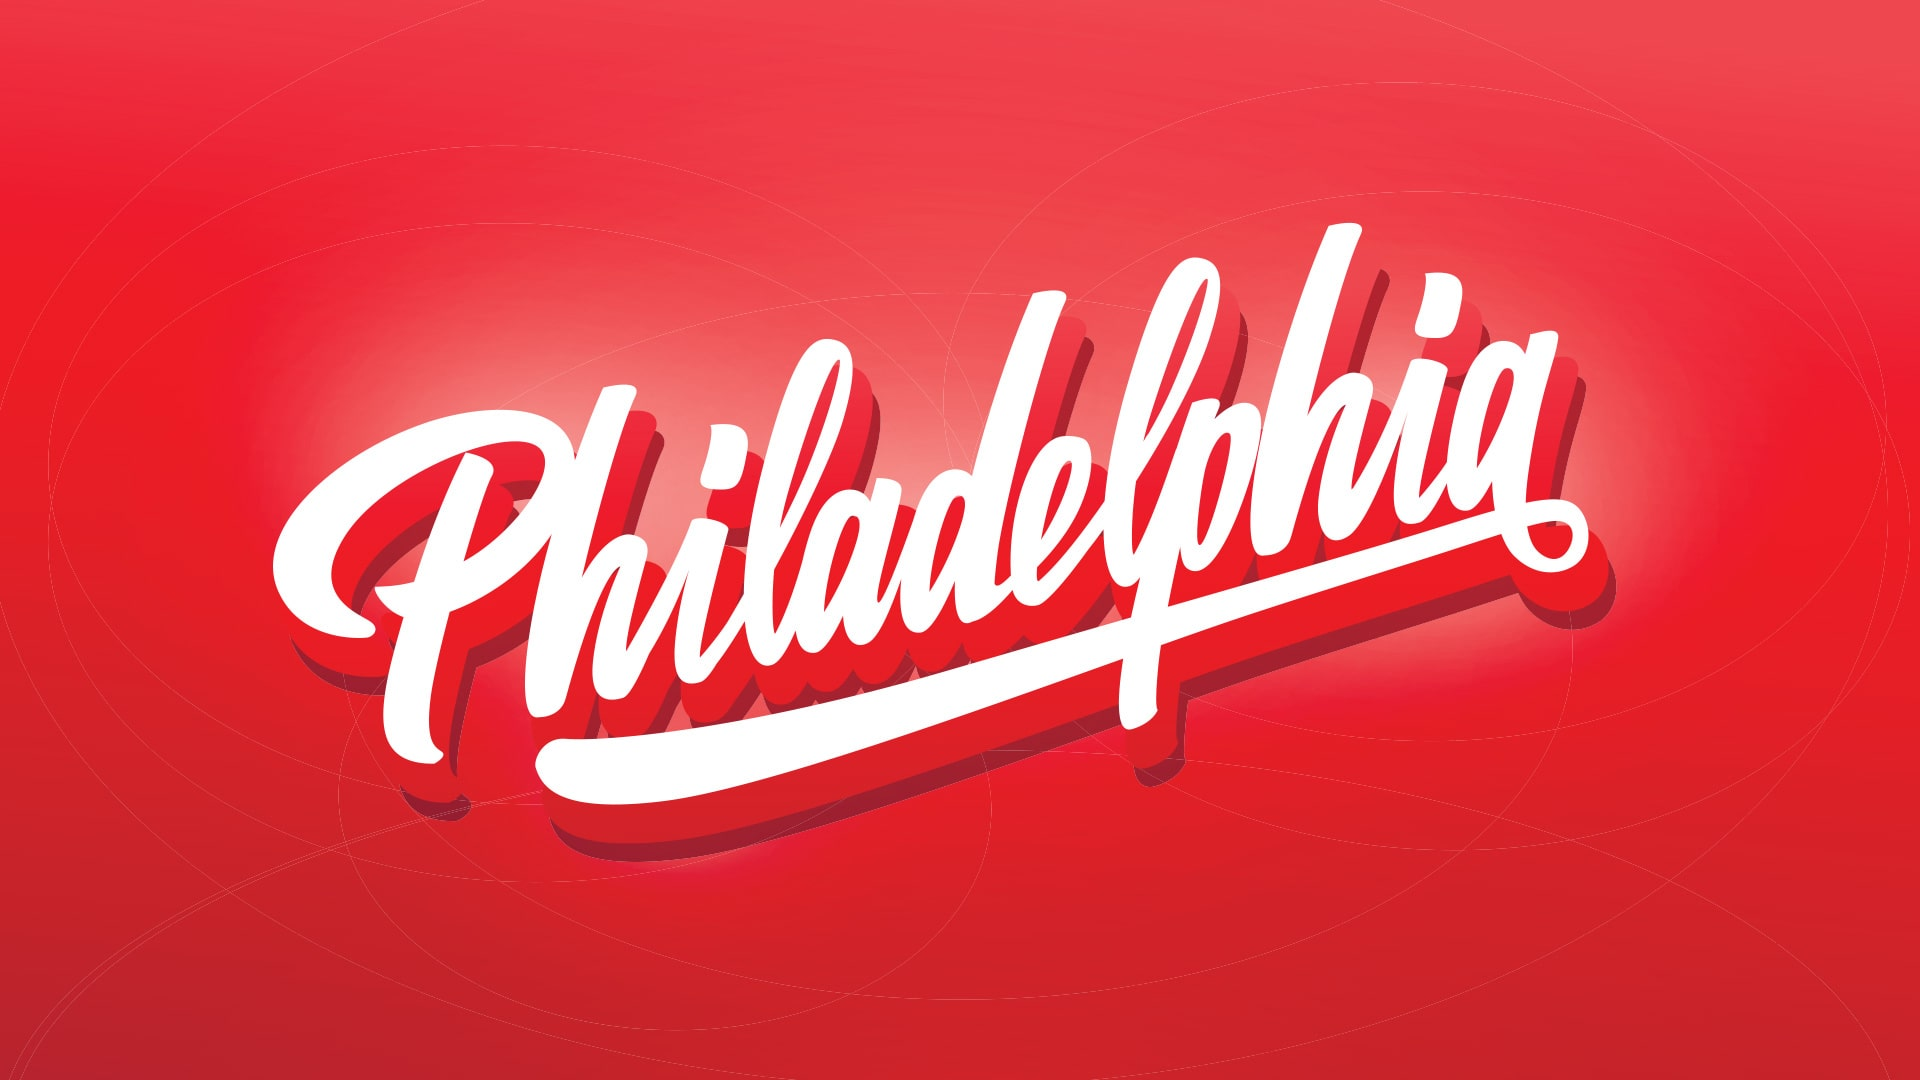 Philadelphia's Remarkable Faithfulness to God